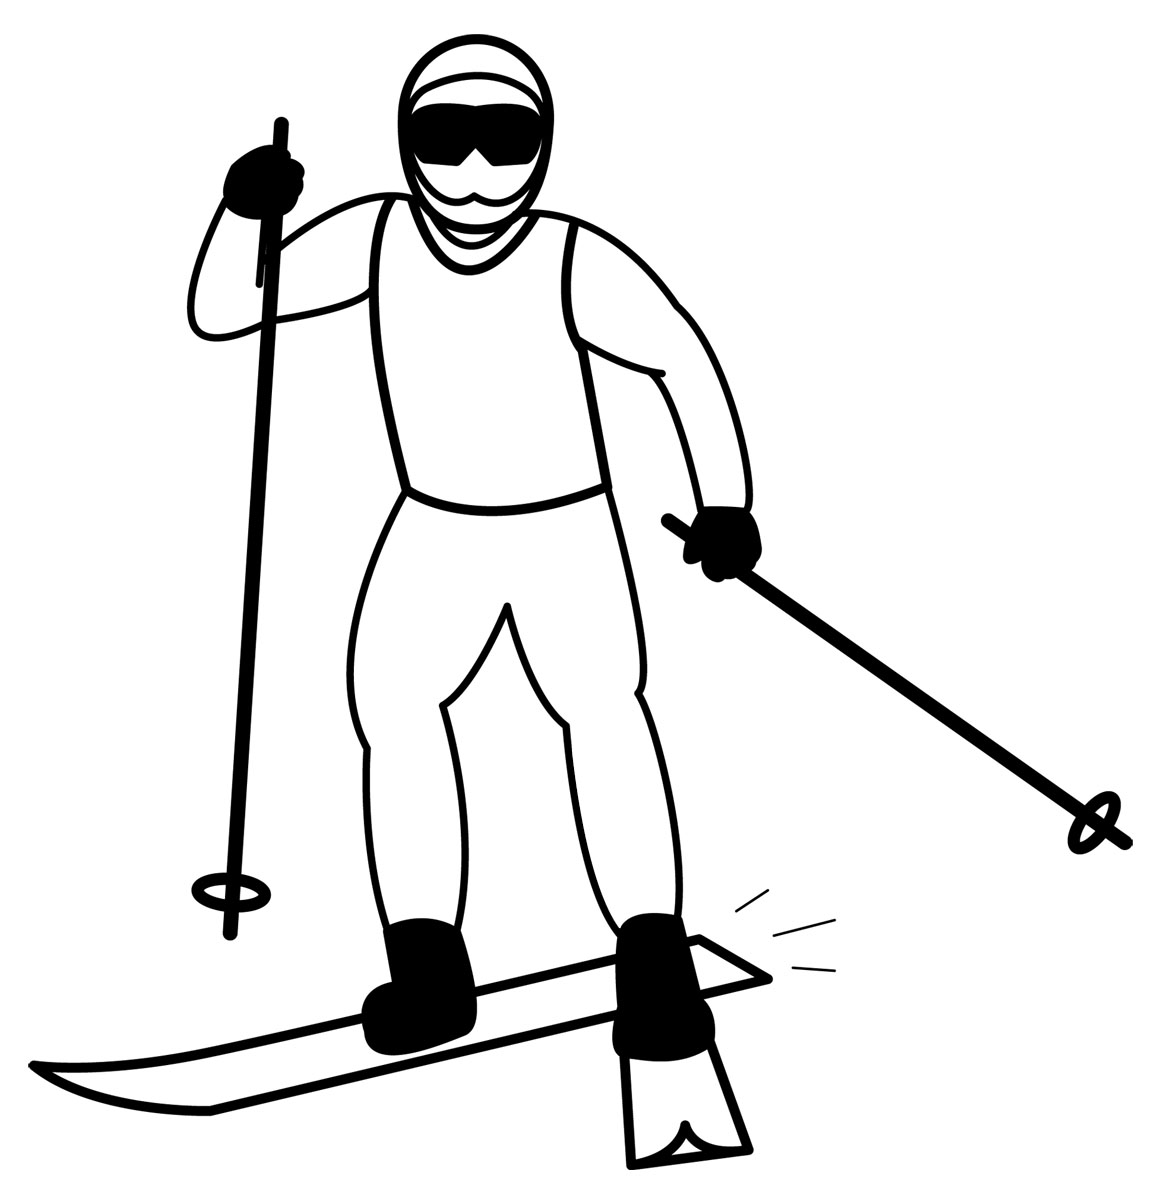 Cross country skier clipart black and white vector freeuse stock Free Ski Cliparts Black, Download Free Clip Art, Free Clip Art on ... vector freeuse stock